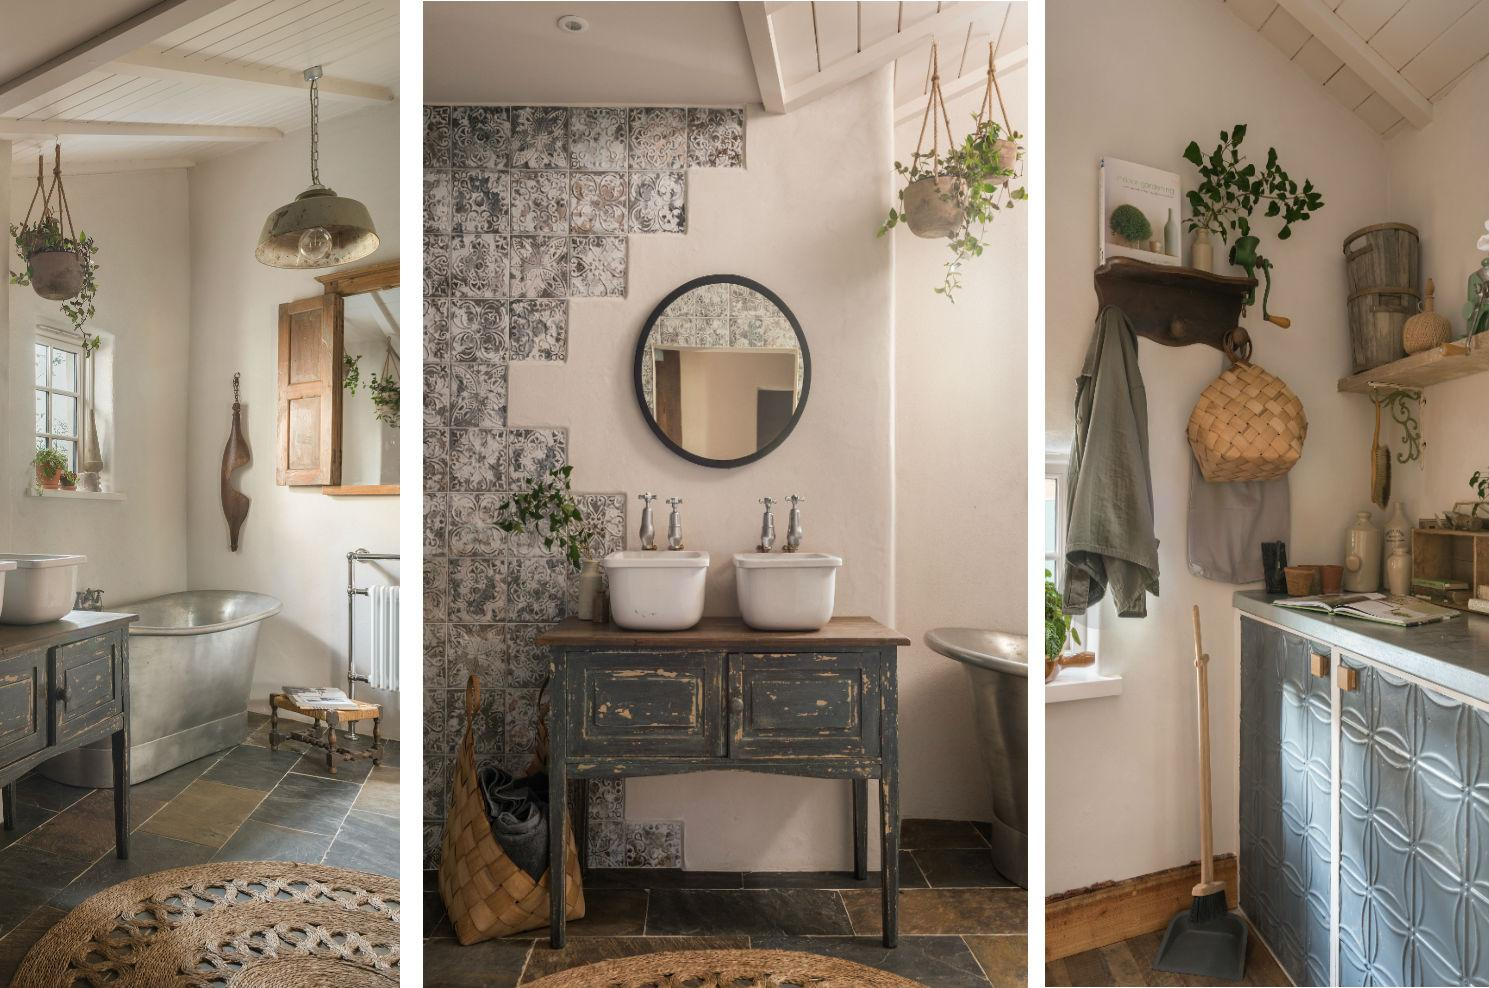 Westwing, Cornovaglia, Vintage, Living, Cucina, Style